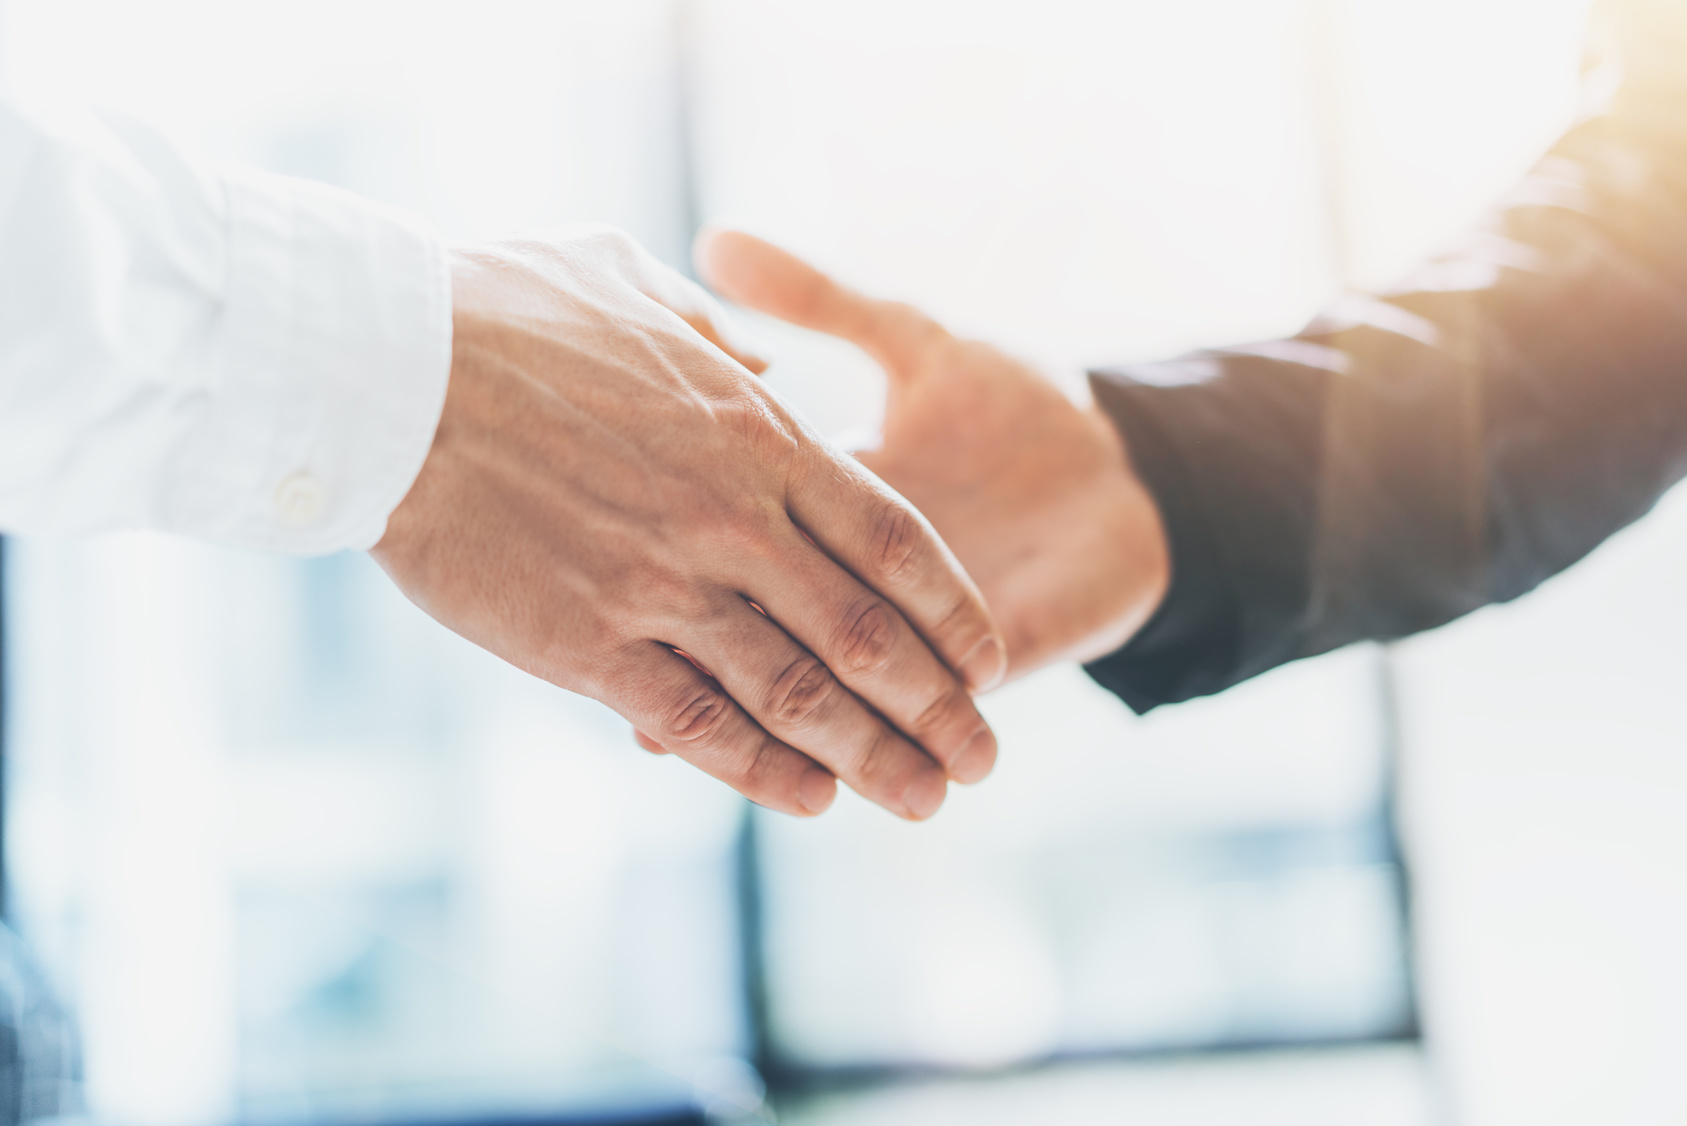 Business partnership meeting. Photo businessmans handshake. Successful businessmen handshaking after good deal. Horizontal, blurred background